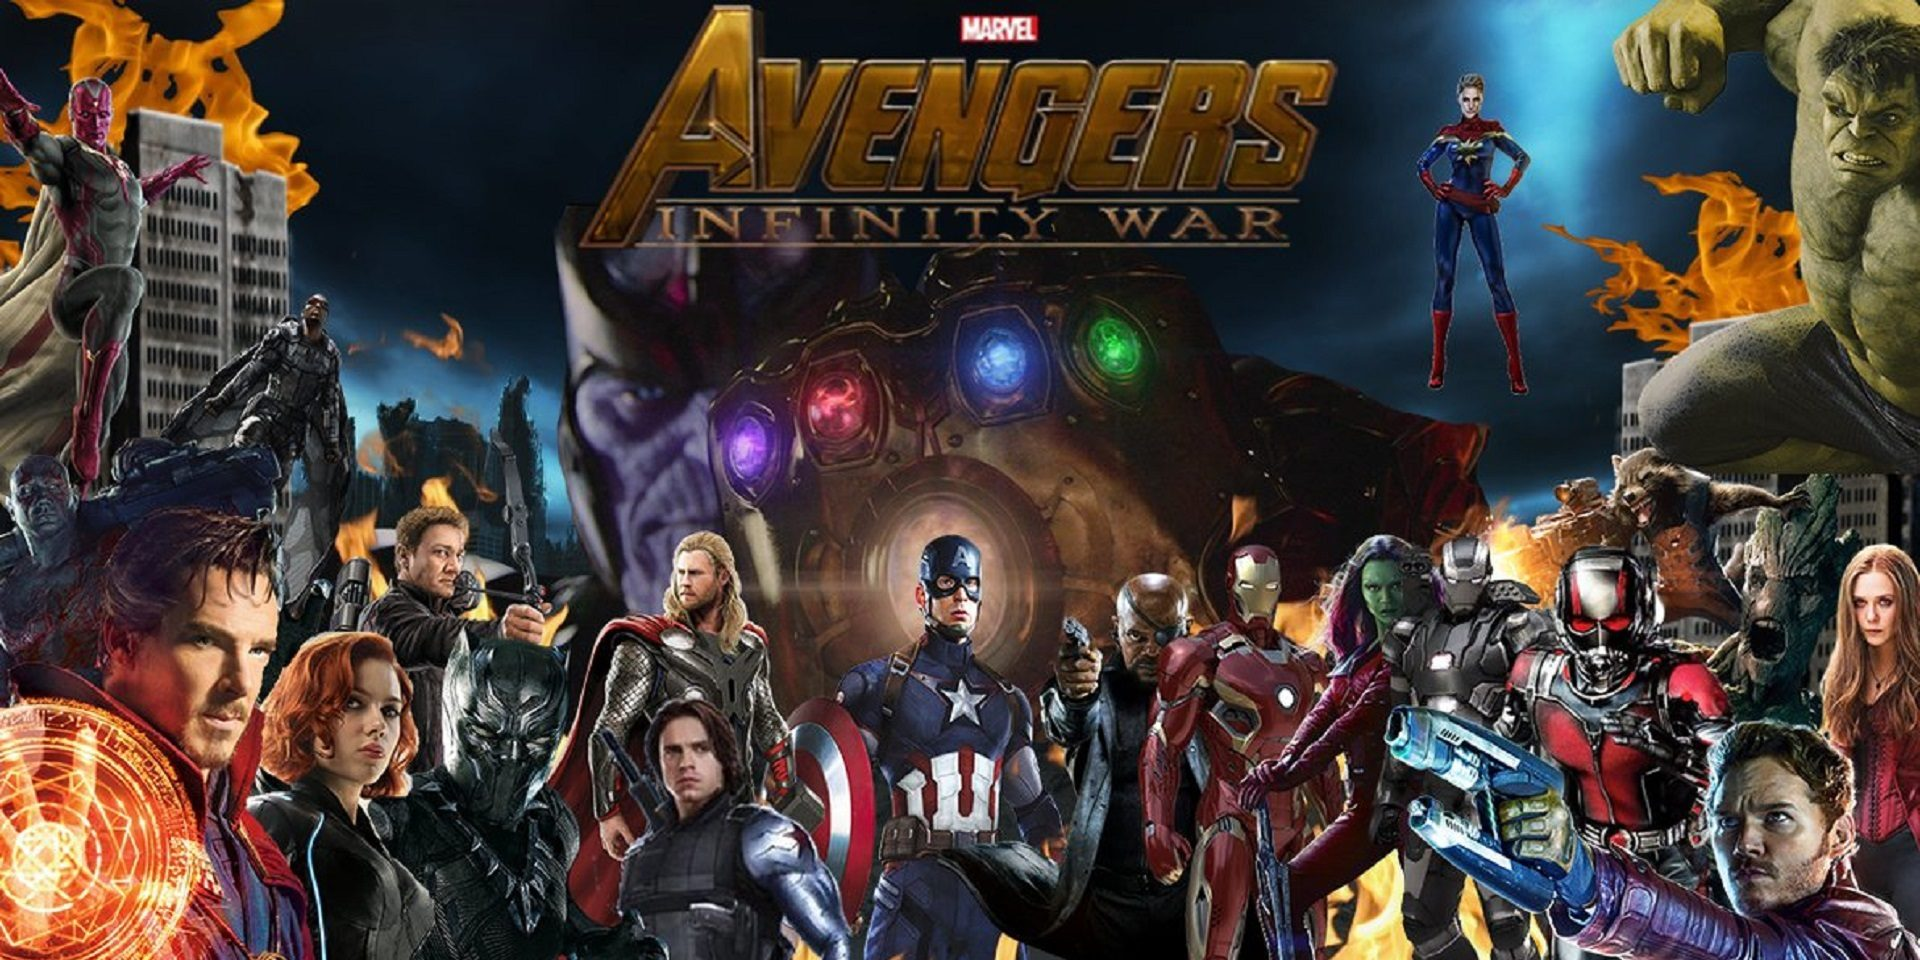 watch 'avengers: infinity war' : new promo clip and dialogue